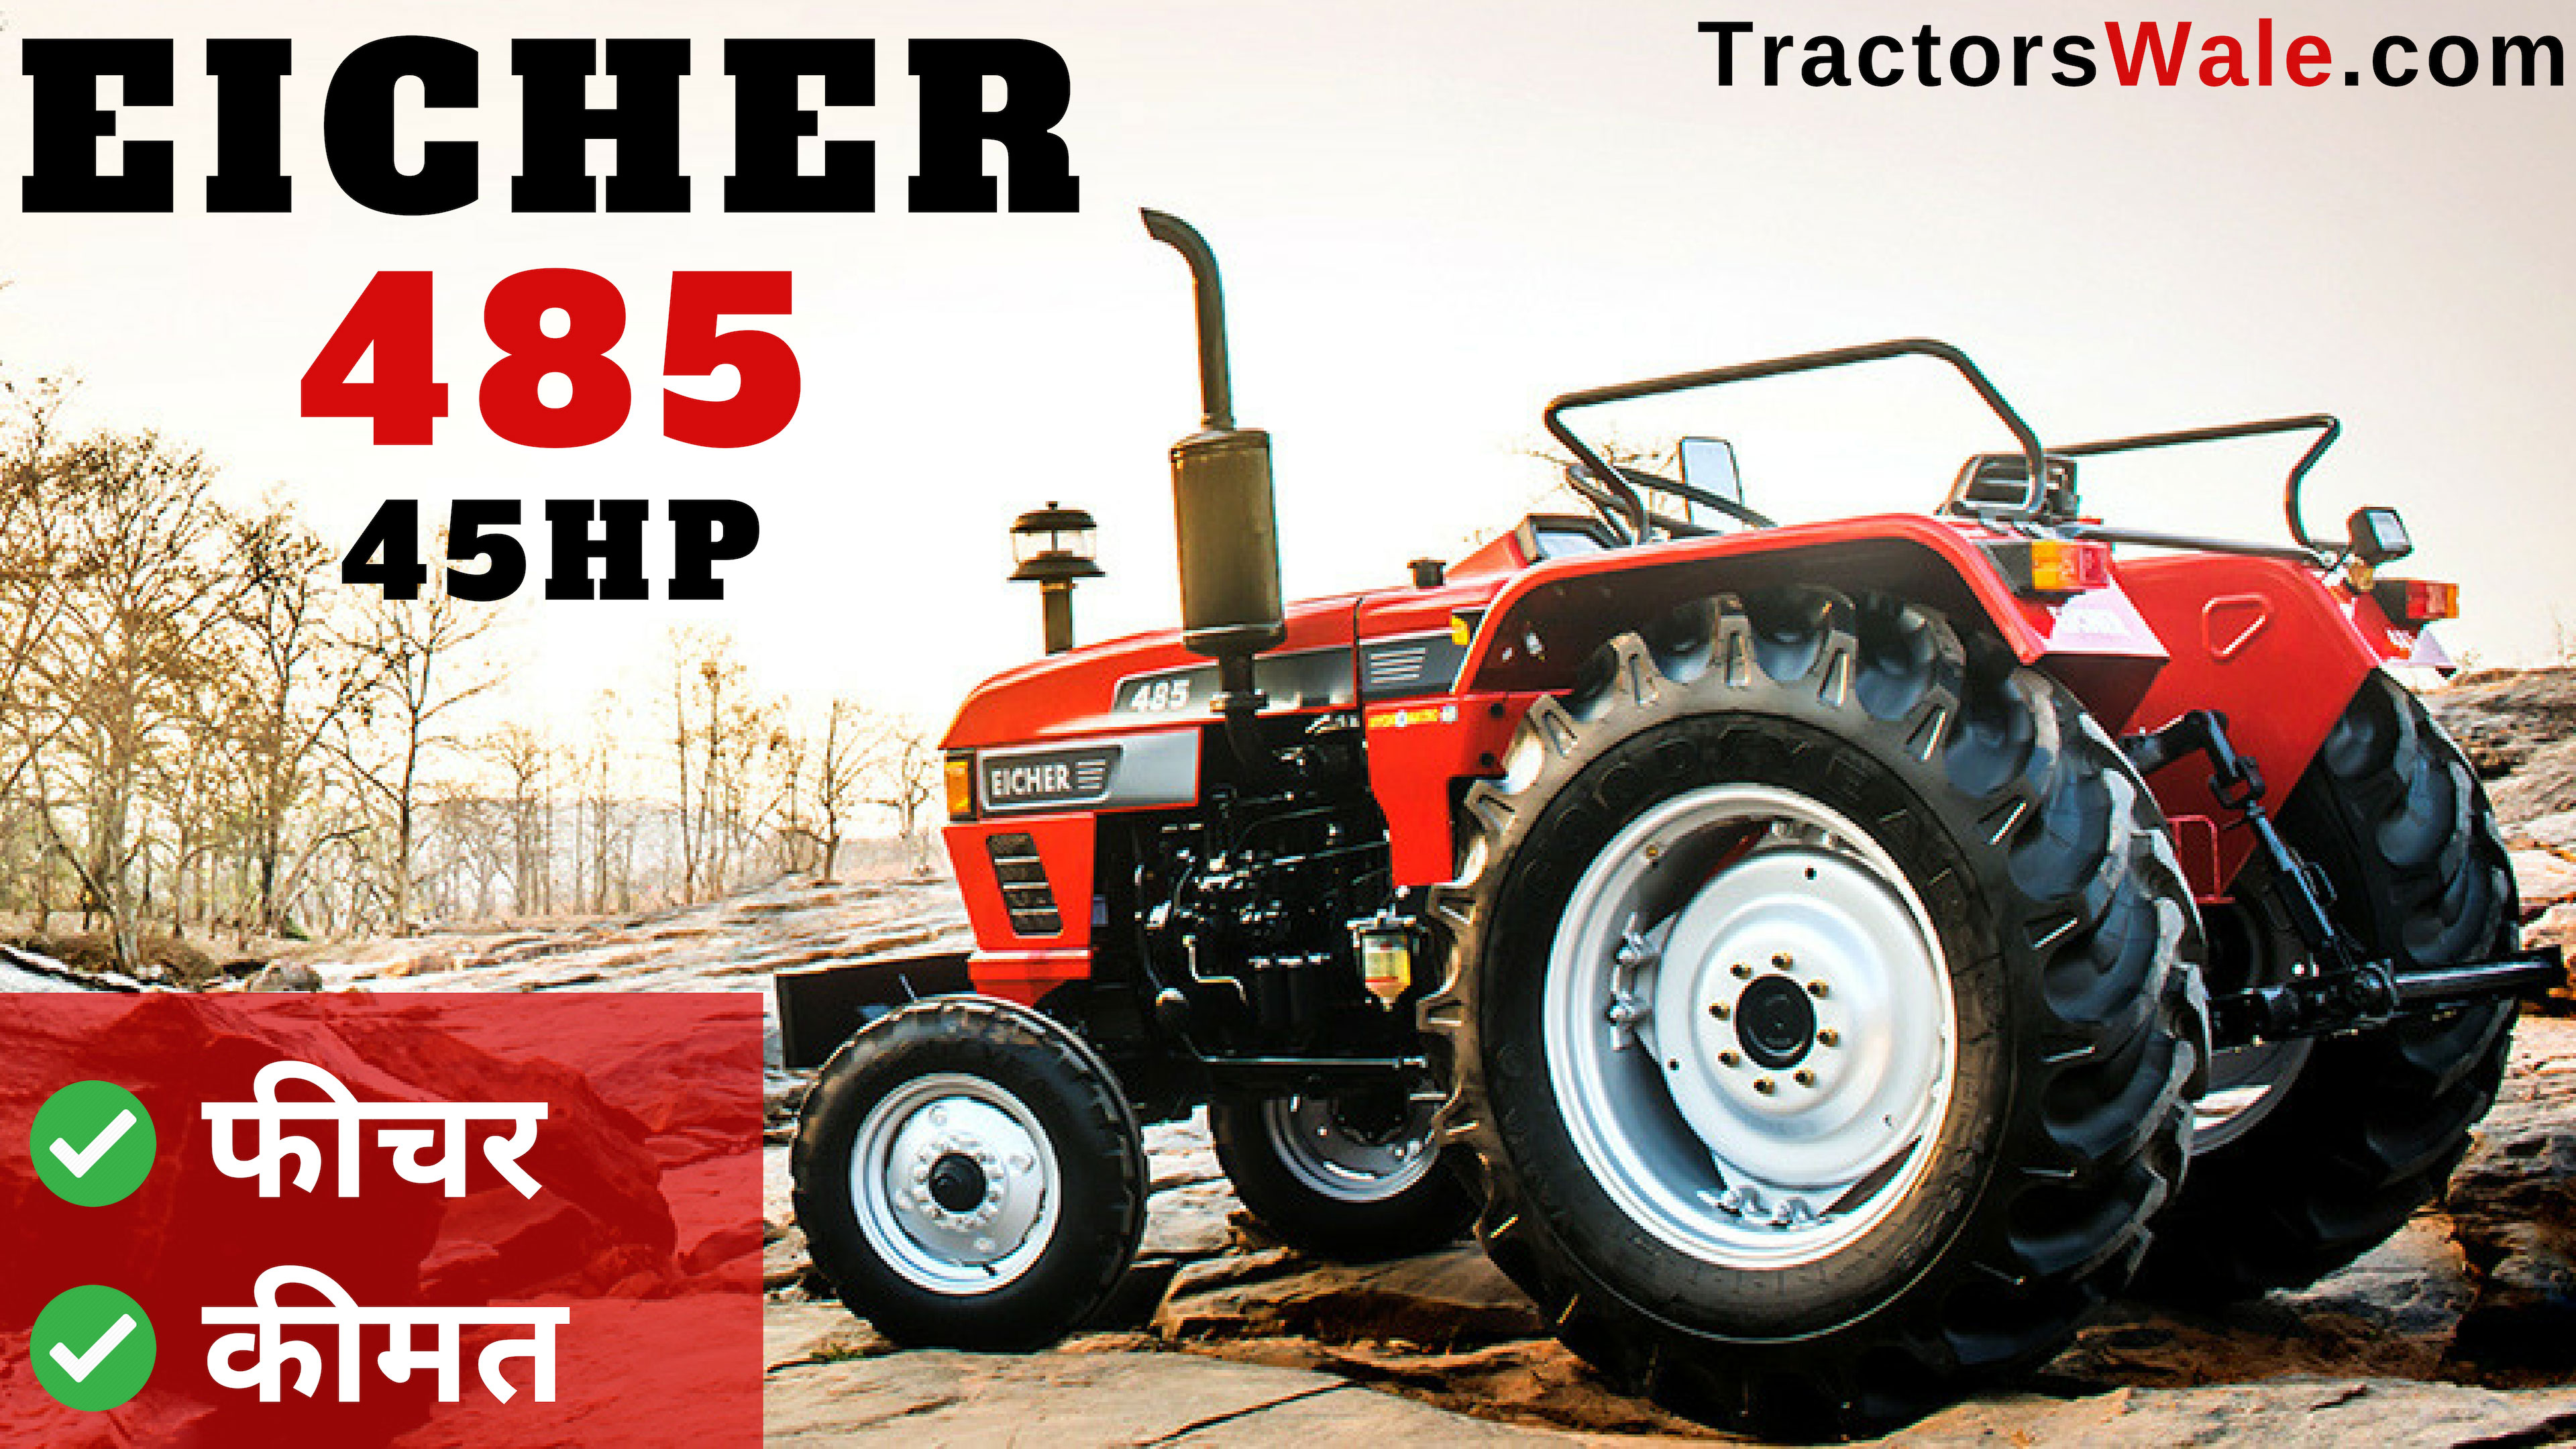 Eicher Tractor – New Eicher 485 Tractor 2019 Price list Specifications